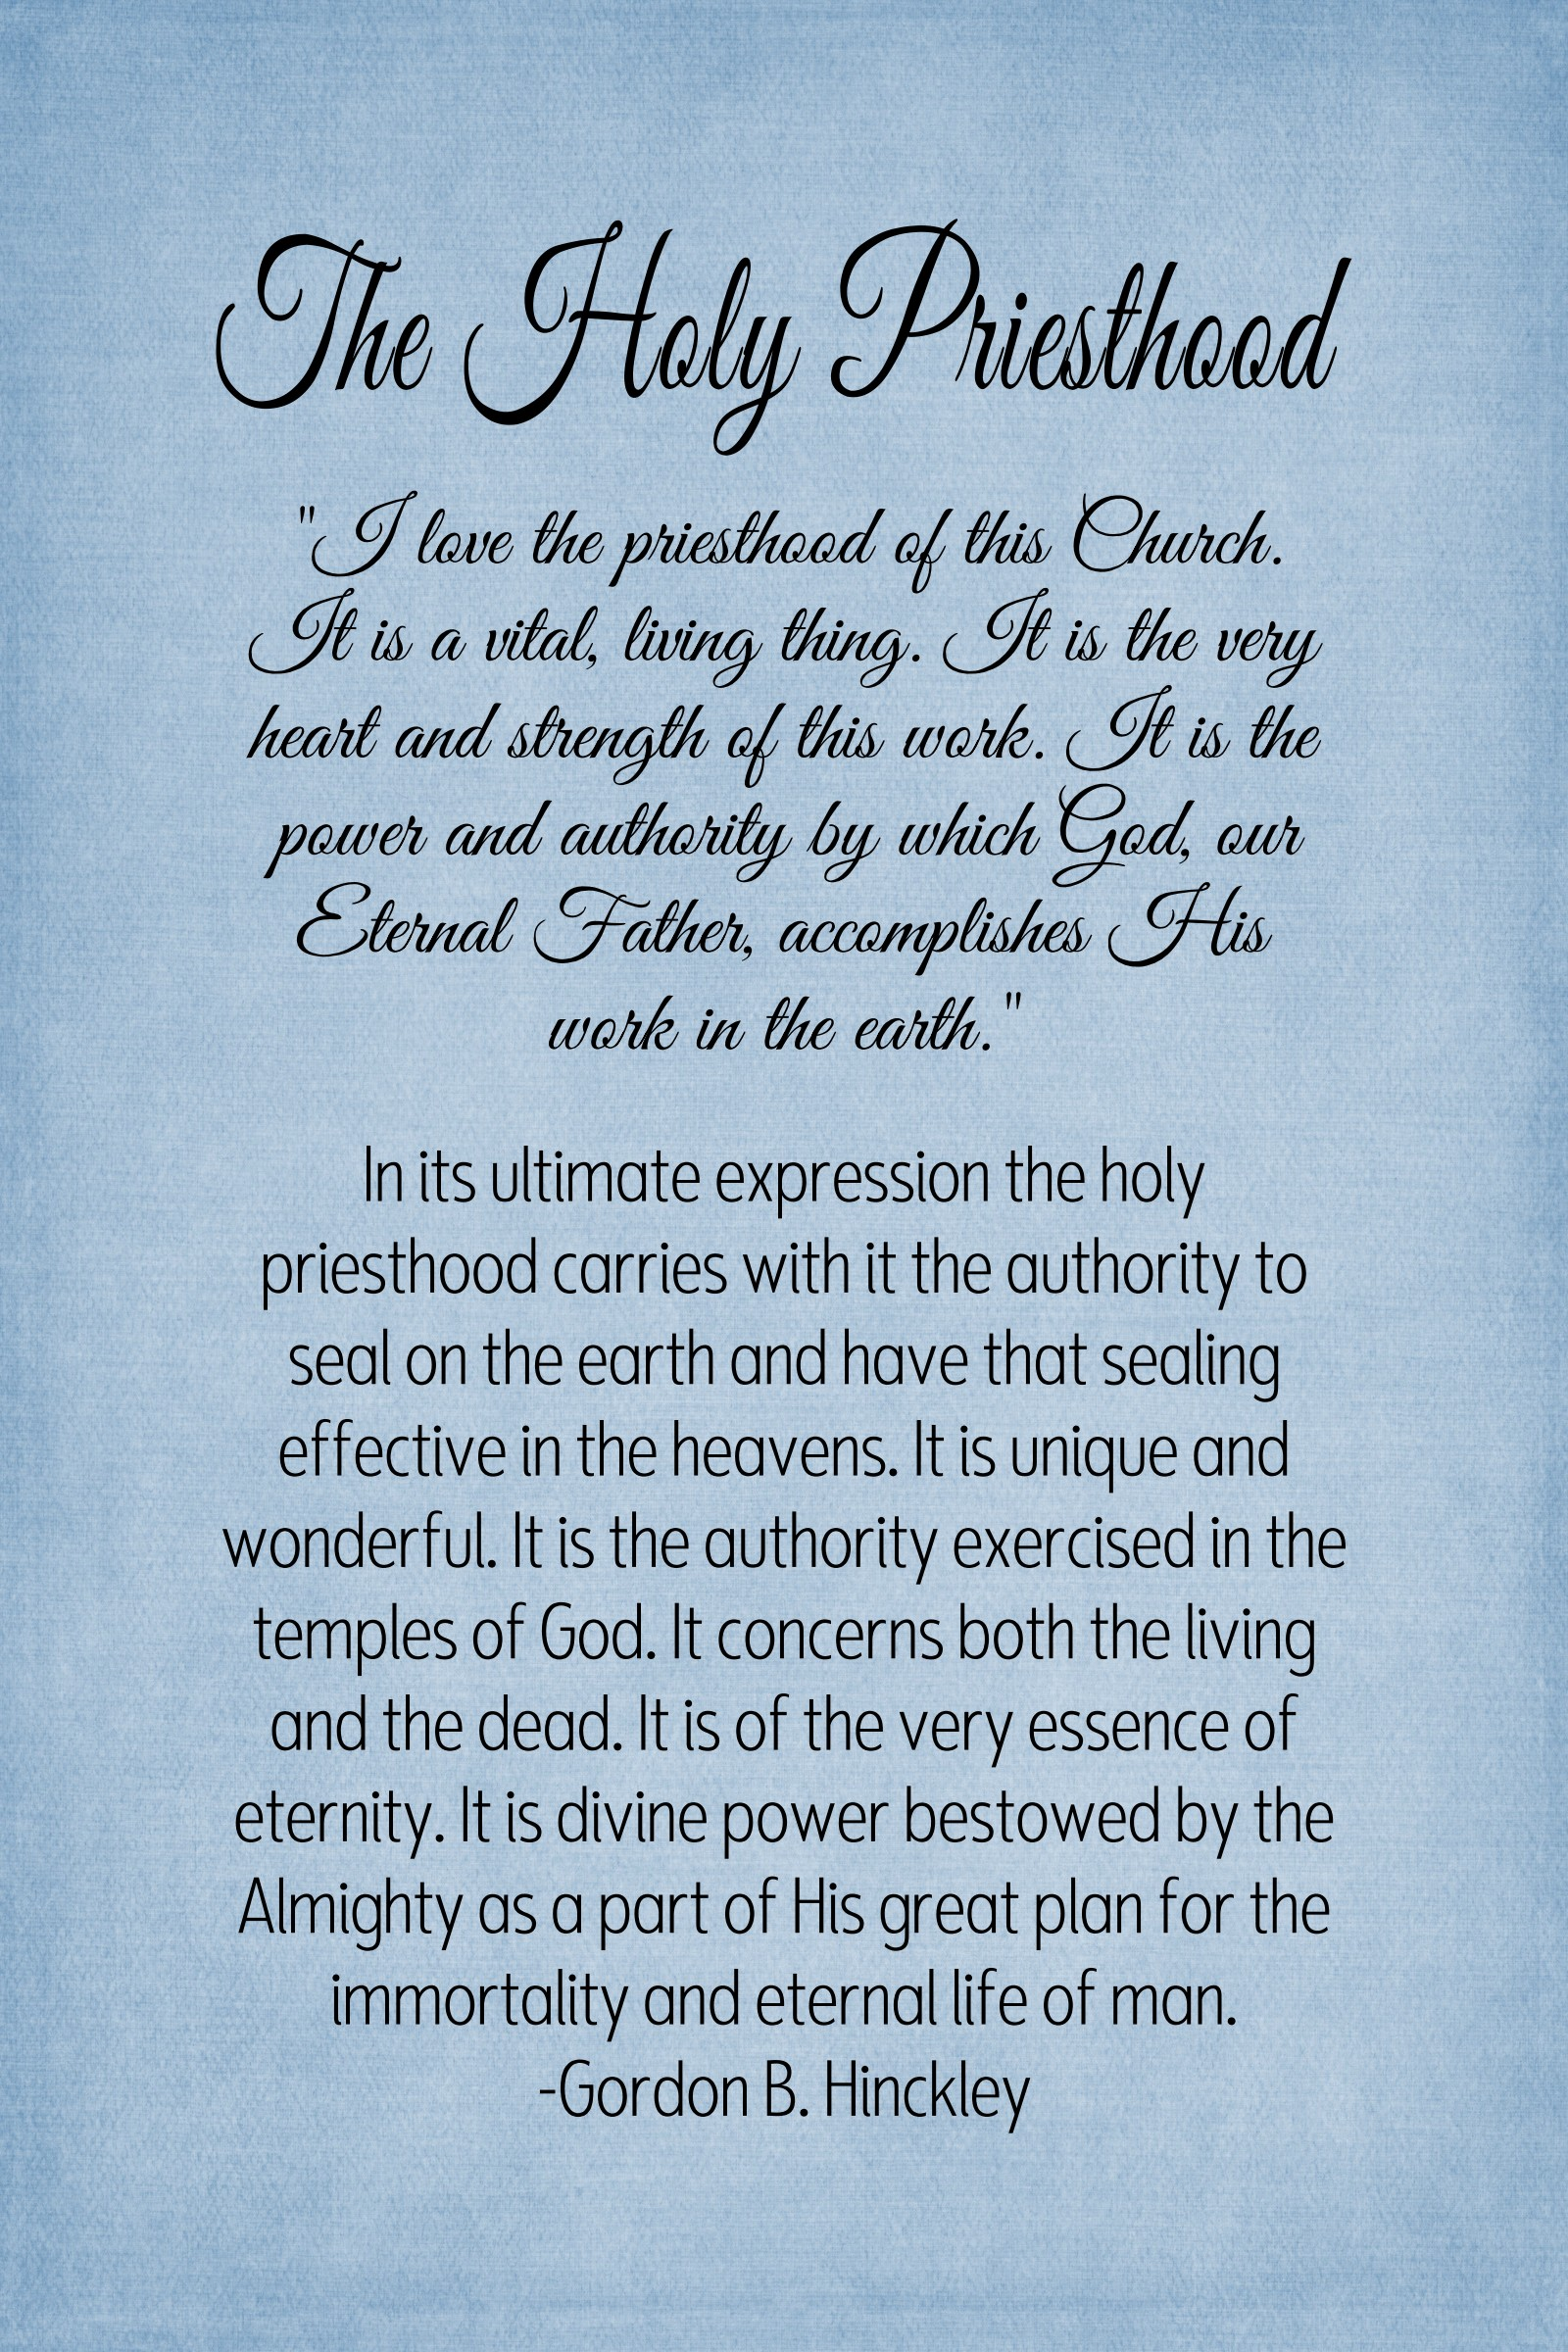 Gordon B Hinckley Quotes 15 Chapter 15 The Holy Priesthood  The Idea Door